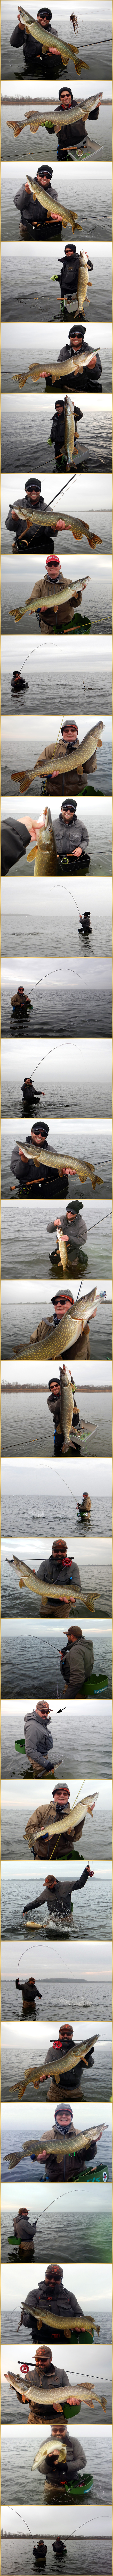 pike trips flyfishing